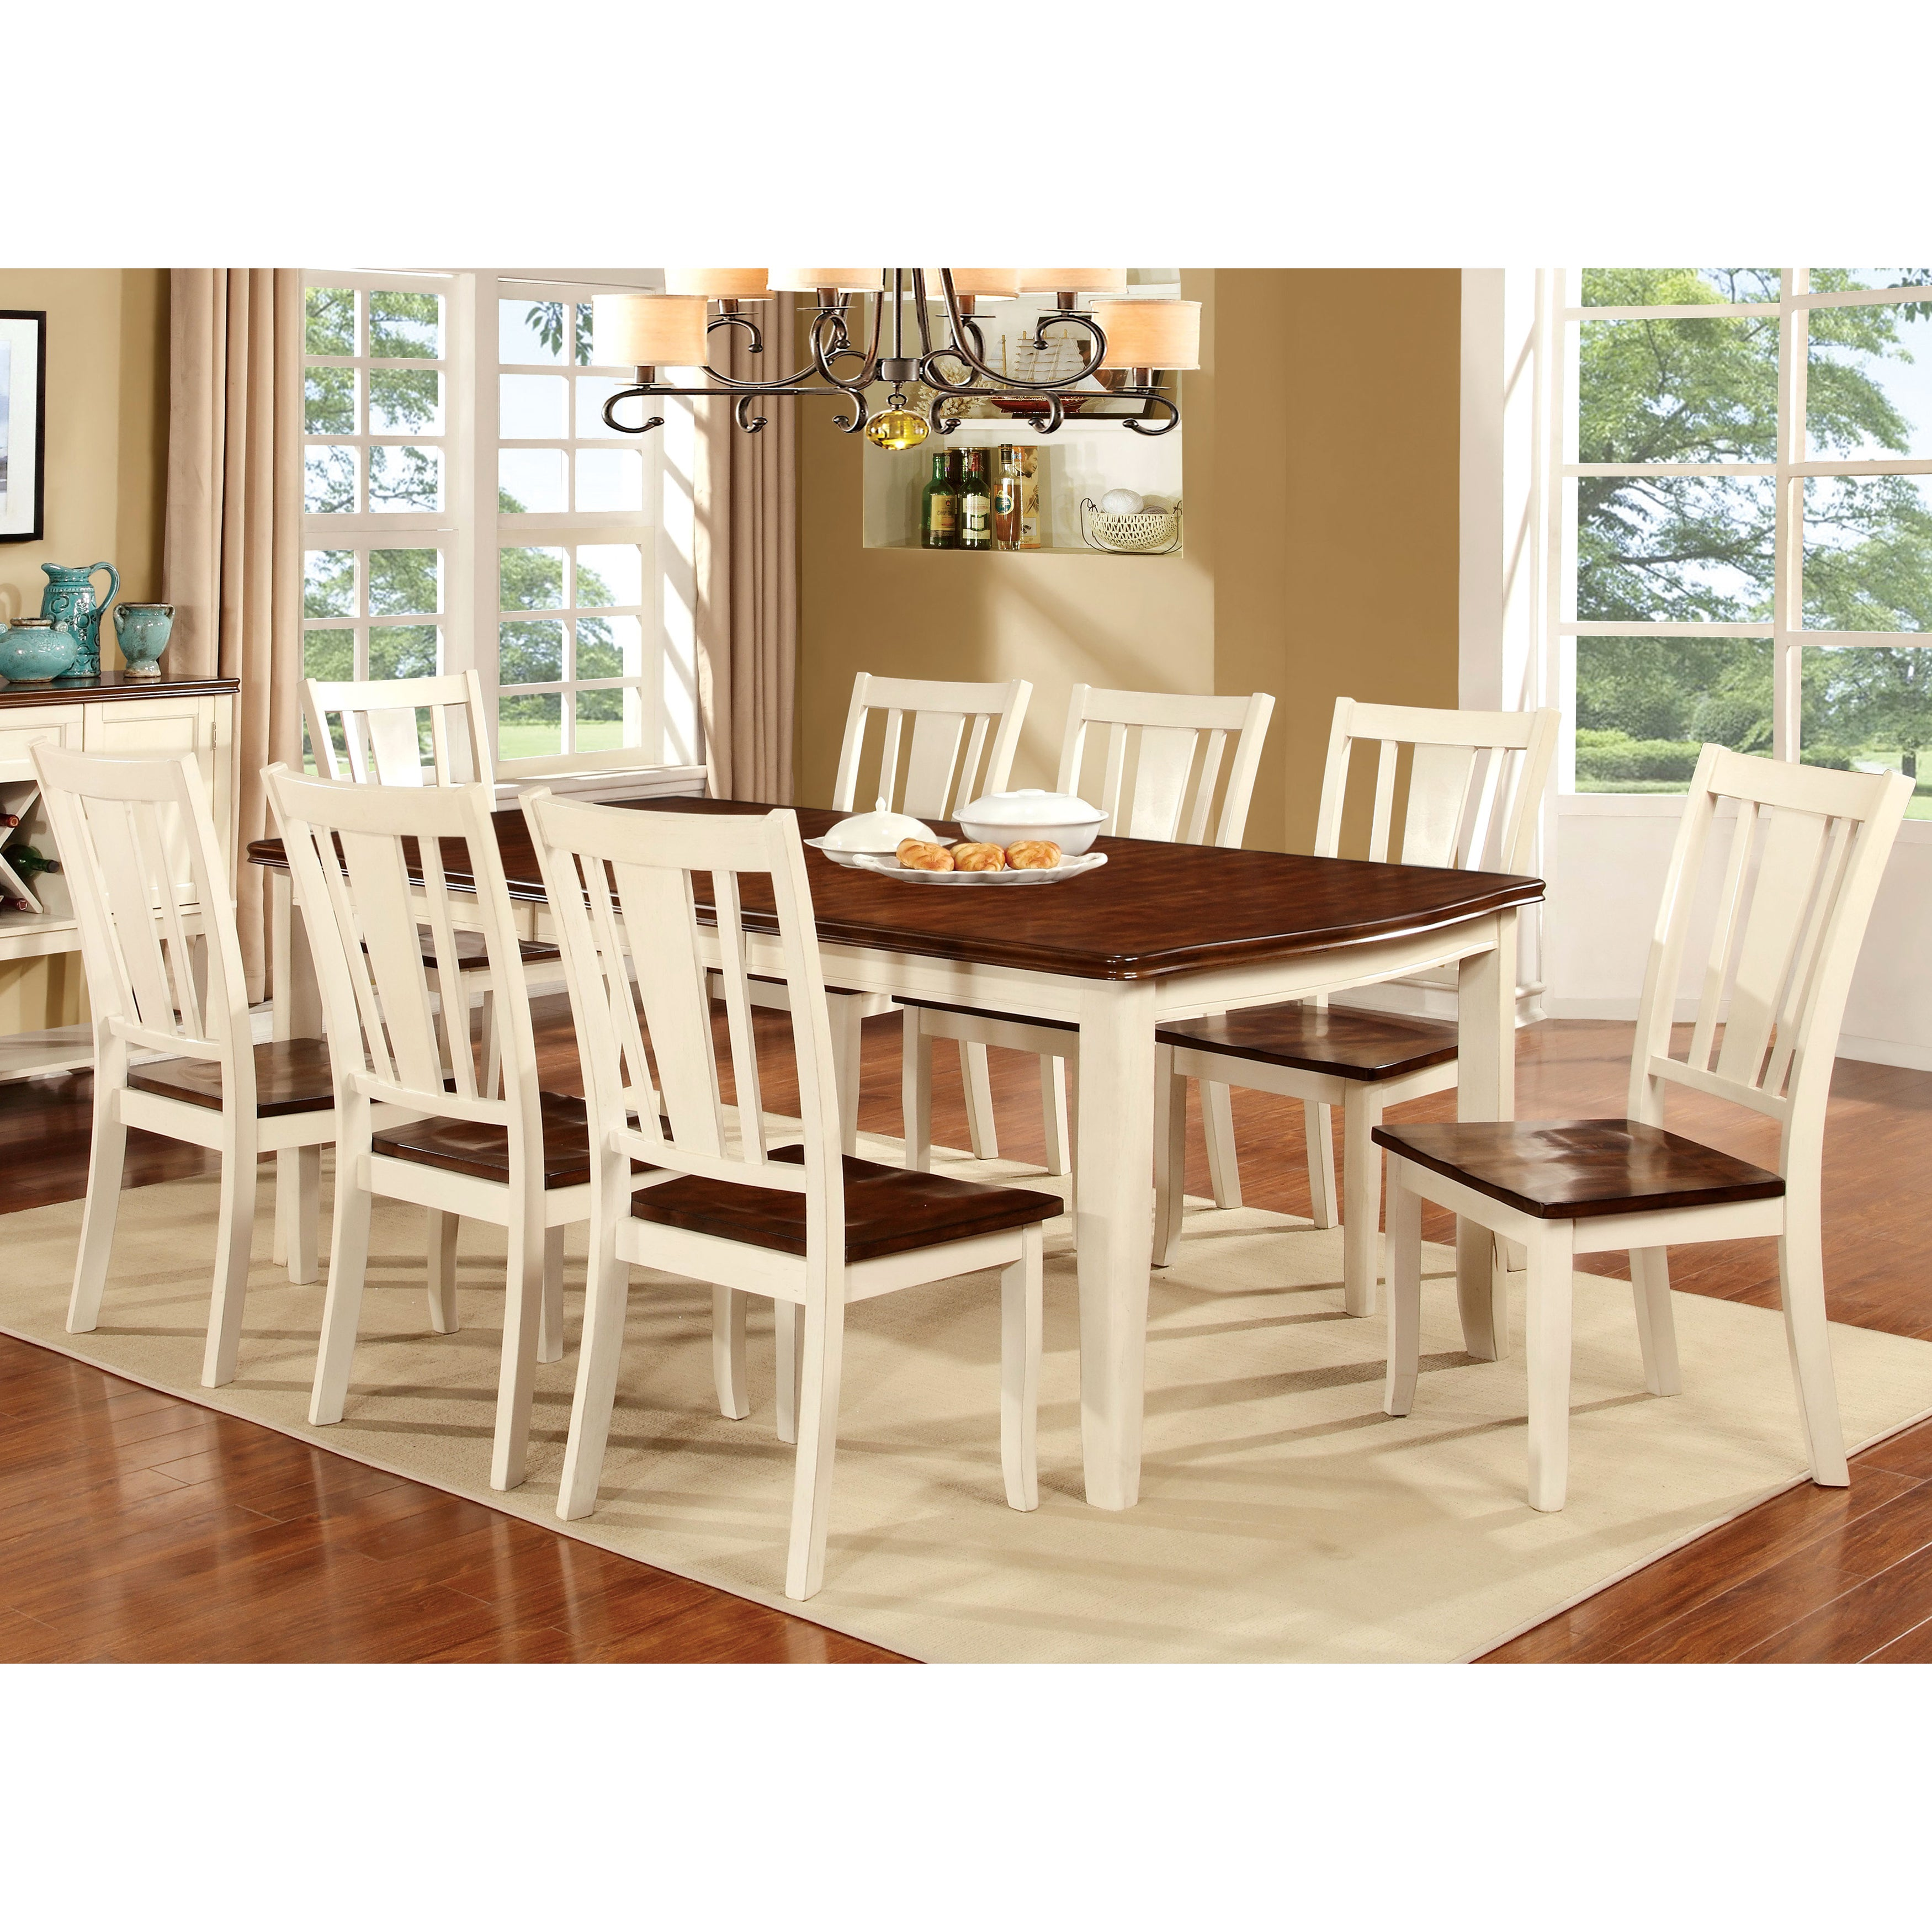 Shop The Gray Barn Epona Country Style Dining Table On Sale Free